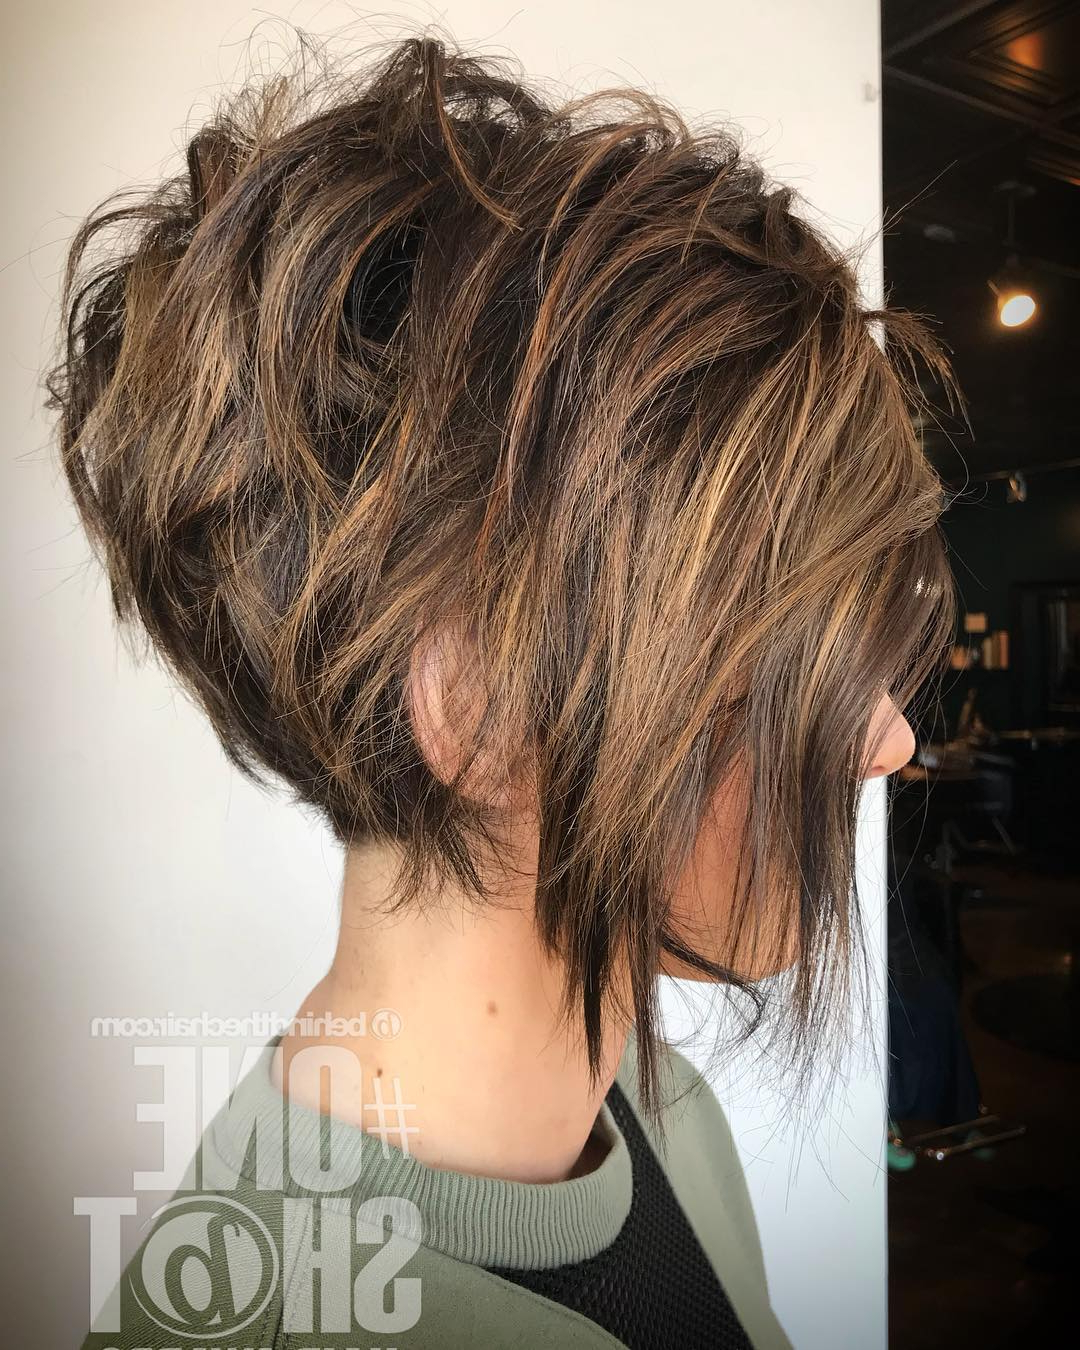 10 Trendy Messy Bob Hairstyles And Haircuts, 2019 Female Short Hair With Regard To Most Up To Date Cute A Line Bob Hairstyles With Volume Towards The Ends (View 8 of 20)